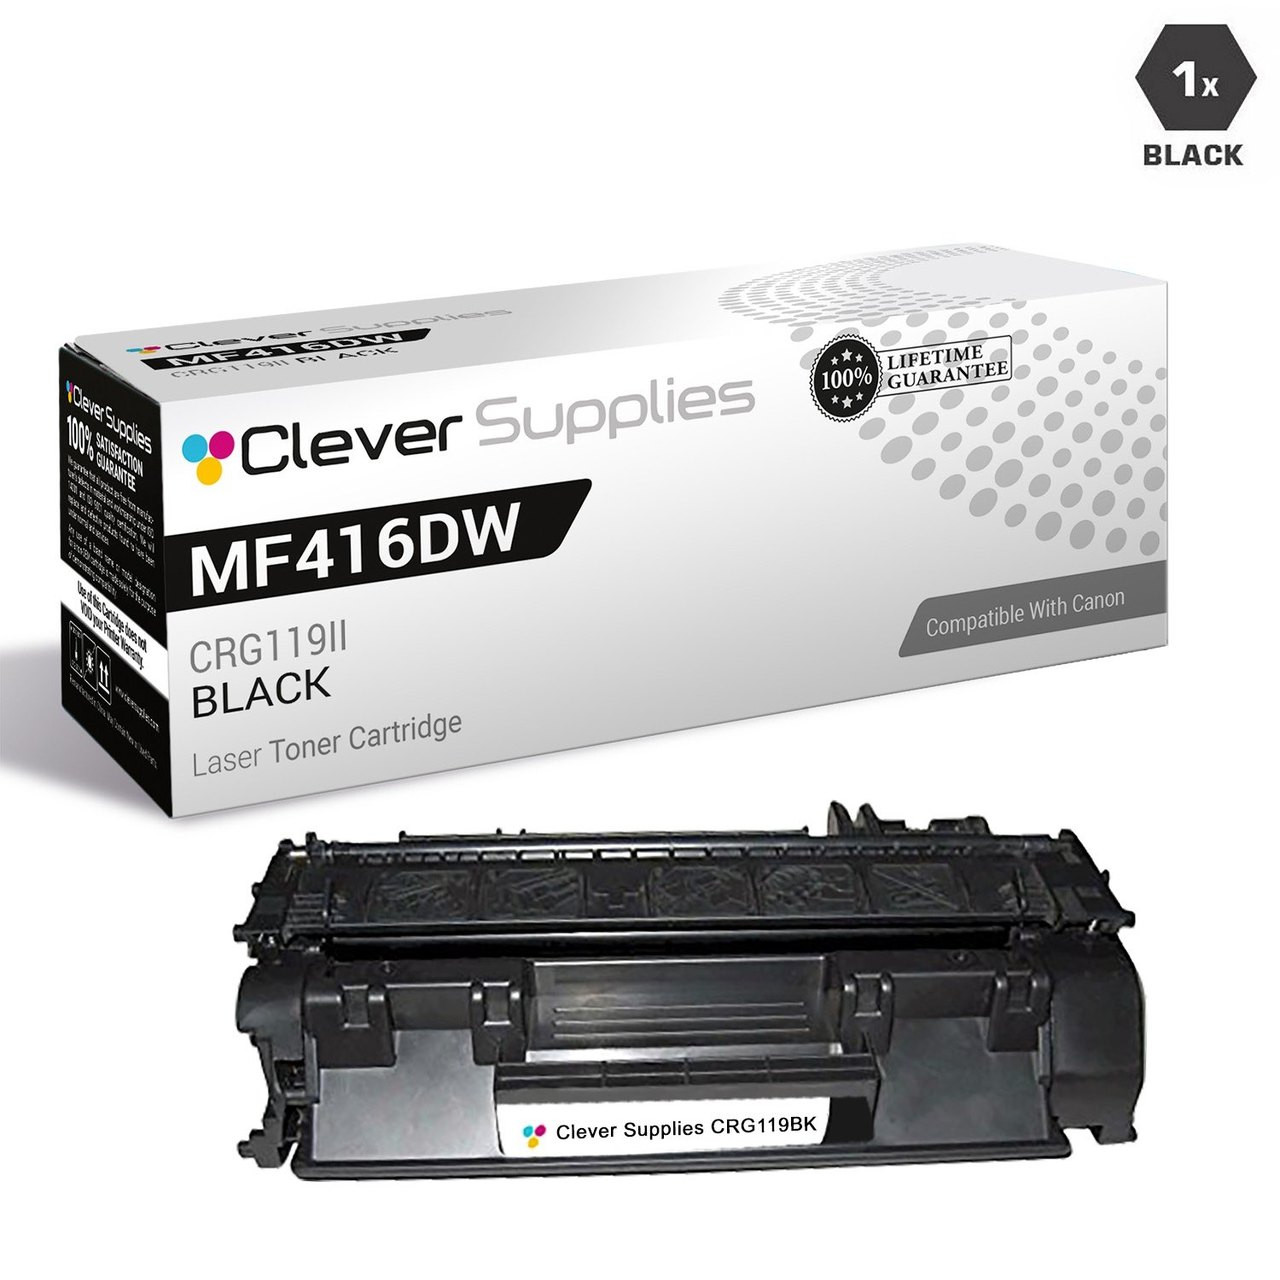 Toner Eagle Re-Manufactured Toner Cartridge Compatible with Canon Imageclass MF414 MF414dw MF416 MF416dw MF419 MF419dw Black 3479B001AA Type 119